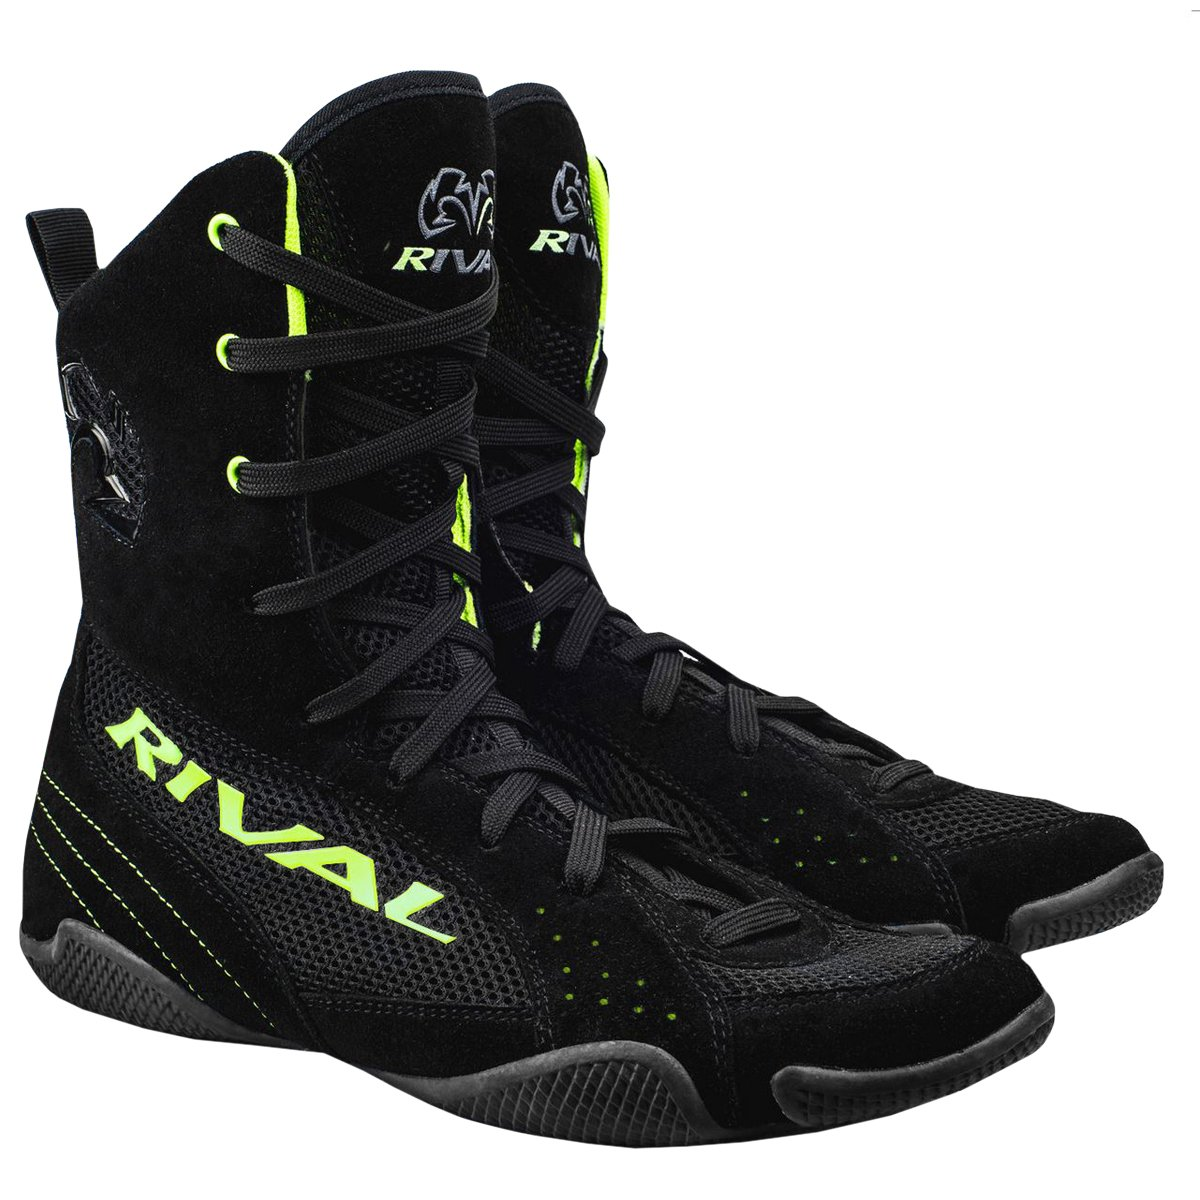 Rival Boxing boots-rsx one-highトップス B01CRM04N6 ライムグリーン 14